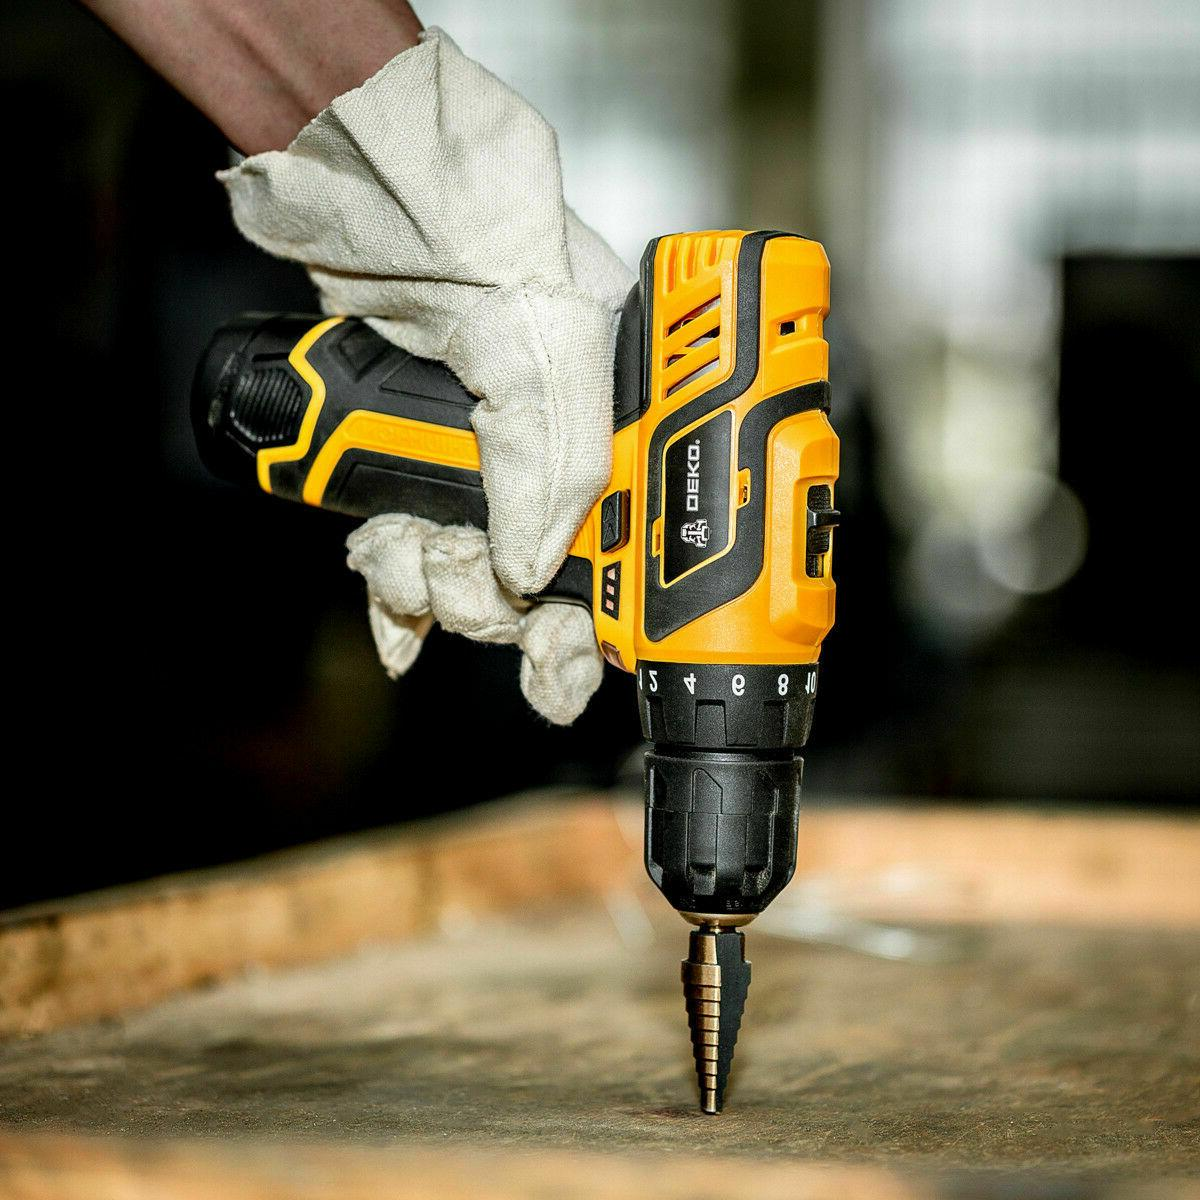 DEKO 12V Lithium-Ion Battery 2-Speed Drill Electric